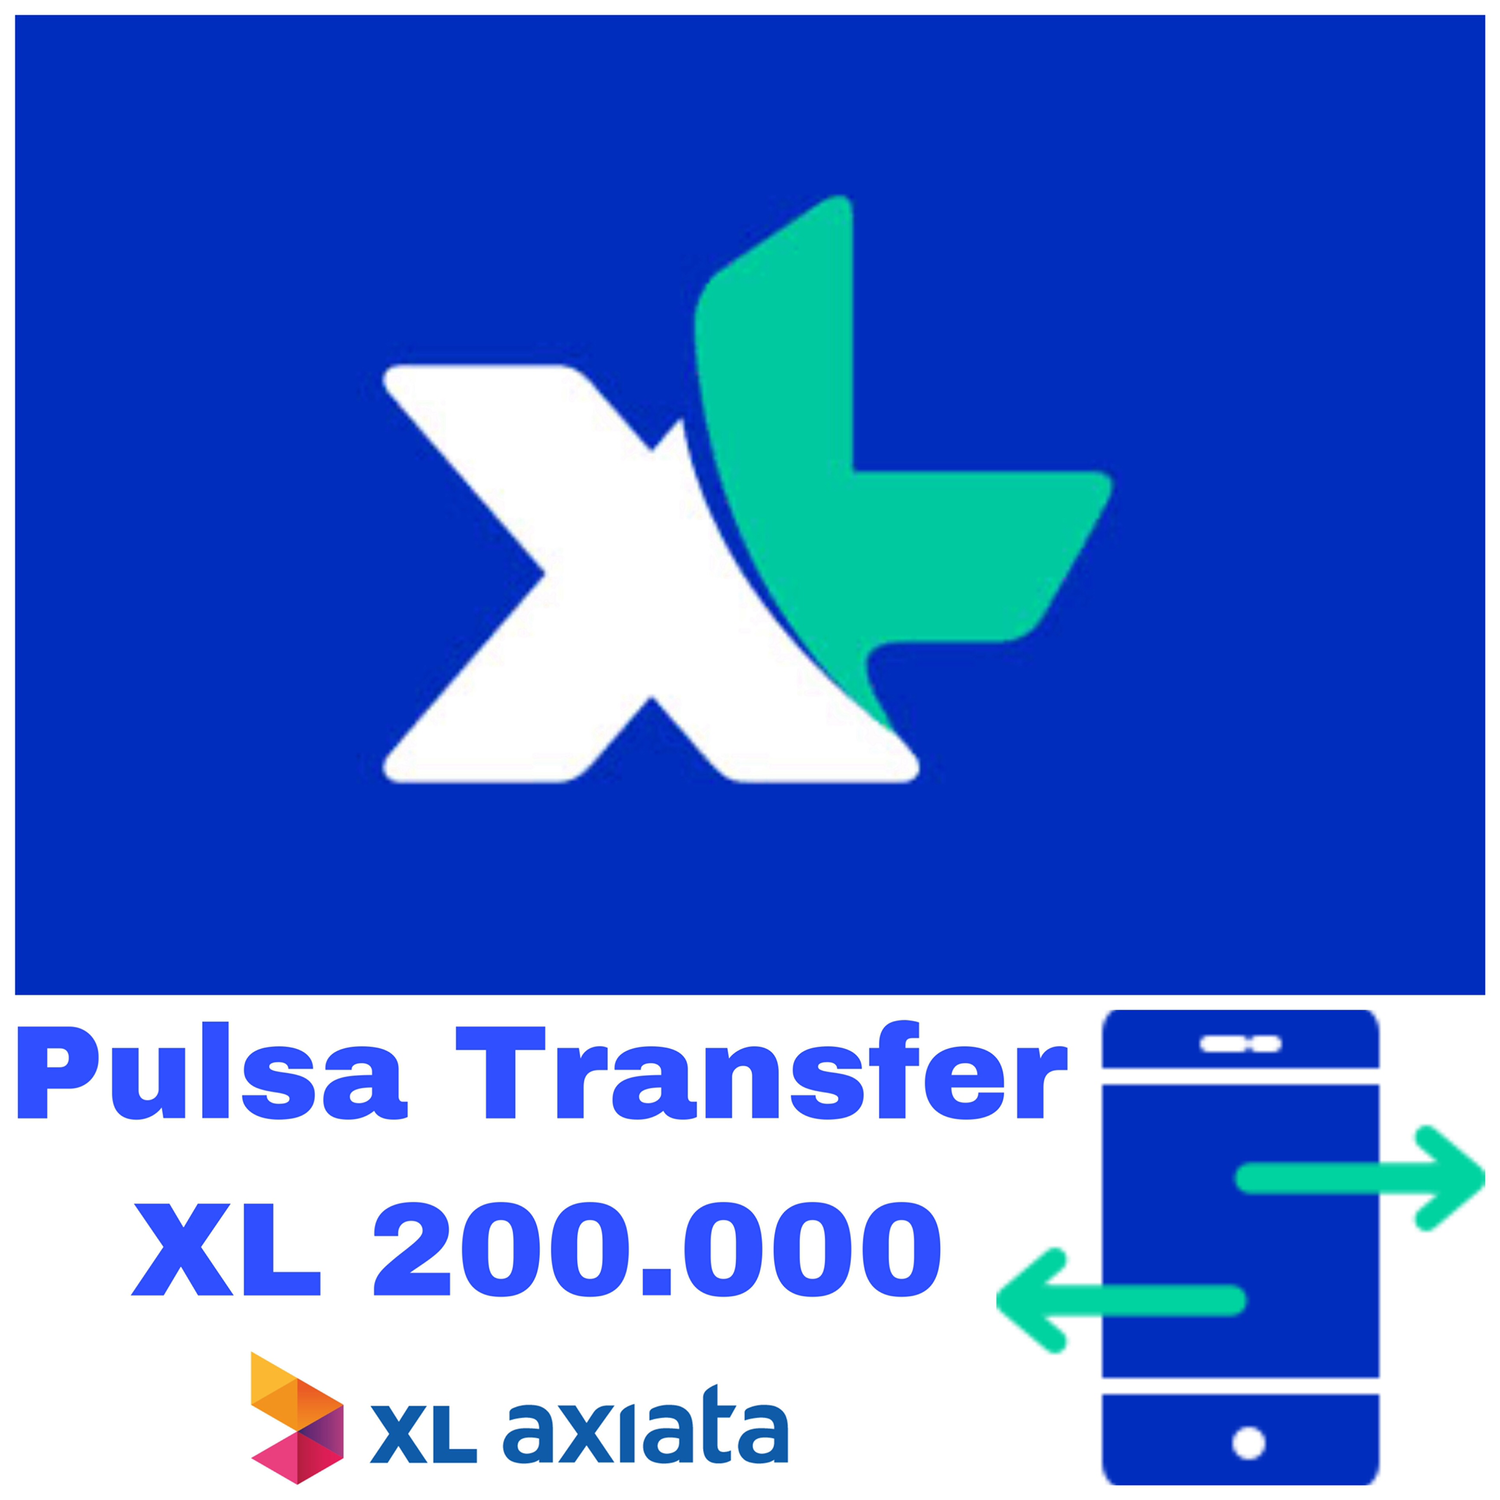 Pulsa Transfer XL 200.000